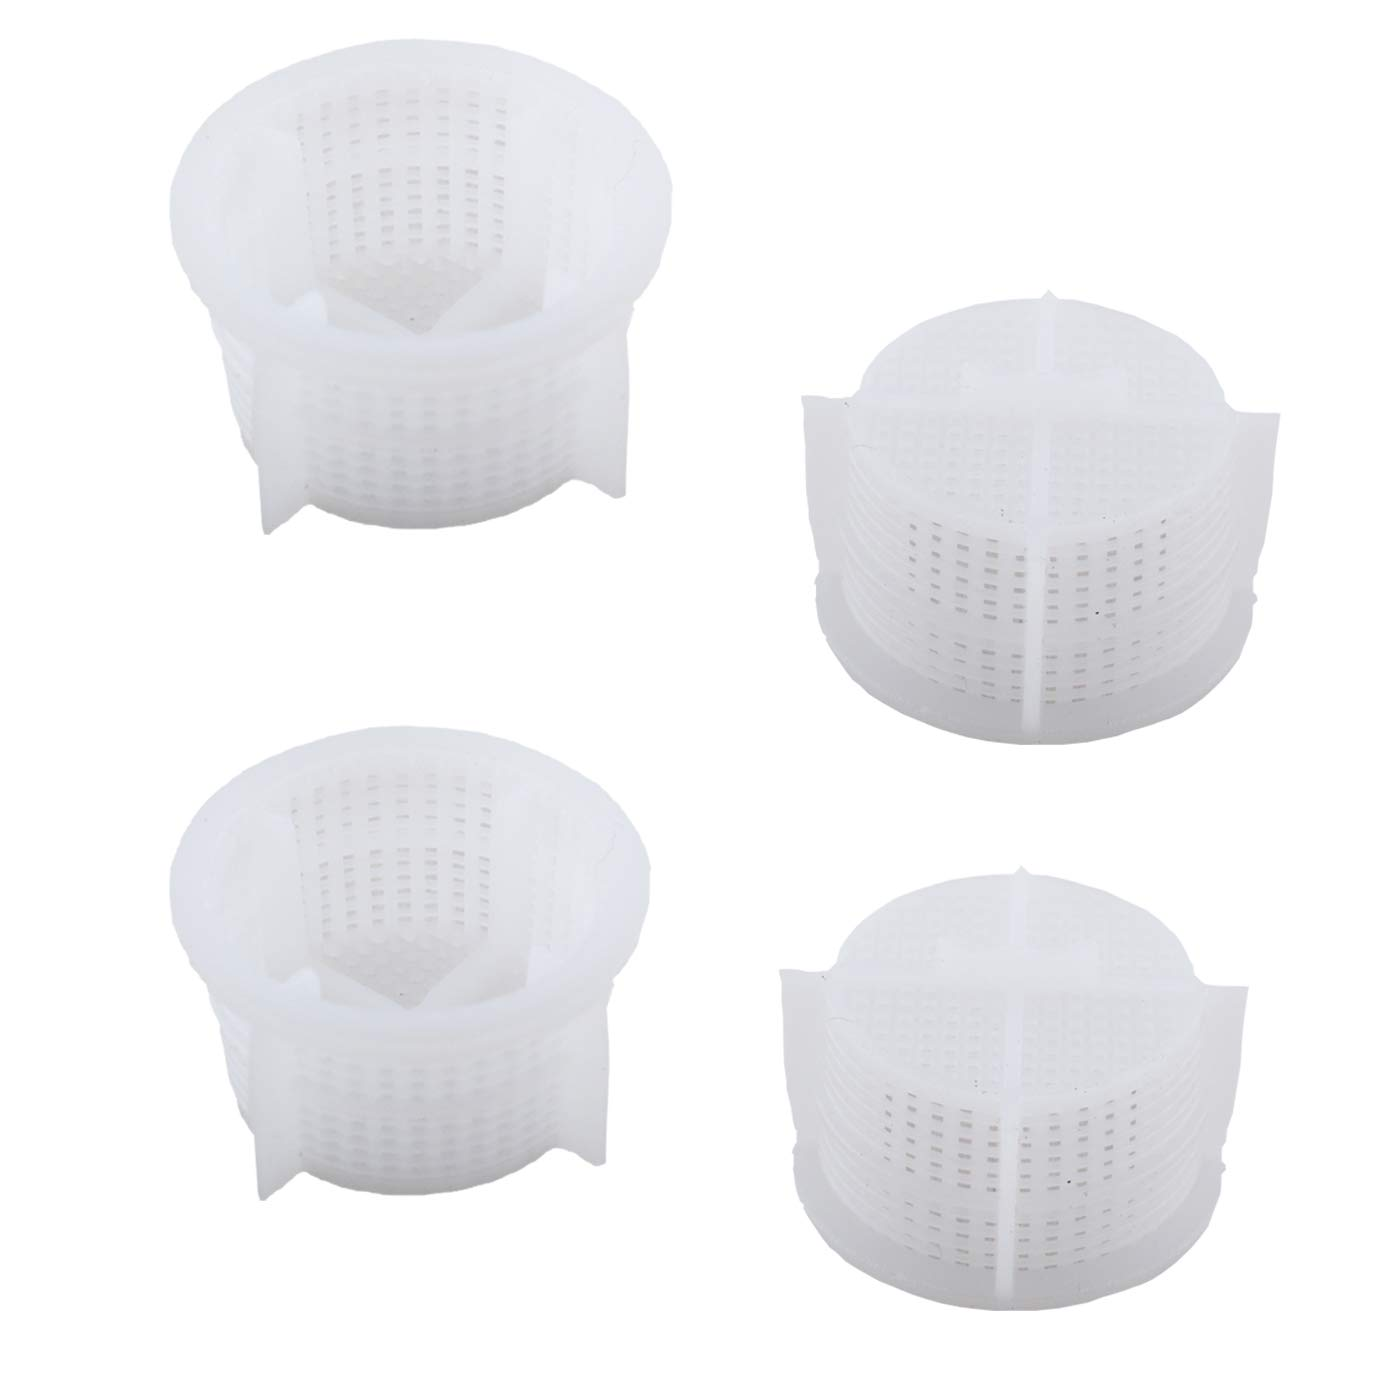 AGM73269501 Washer Water Inlet Valve Filter Screen for LG & Kenmore Washers, Replaces for AP5202486, 1810261, AH3618281, EA3618281 & PS3618281 Pack of 4